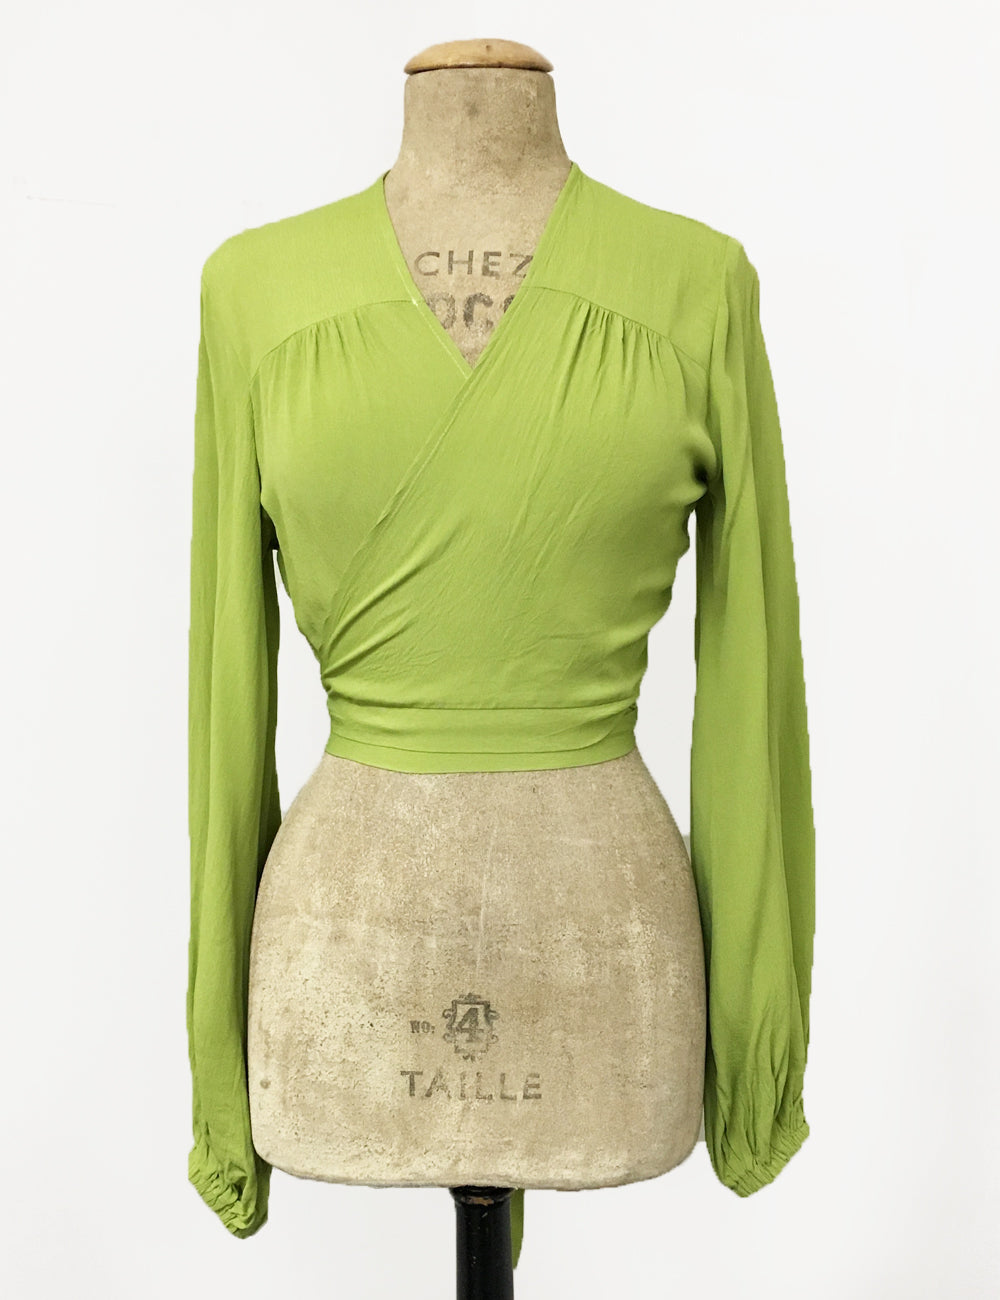 1950s Tops and Blouse Styles Bright Chartreuse Green Balloon Sleeve Babaloo Tie Crop Top $88.00 AT vintagedancer.com